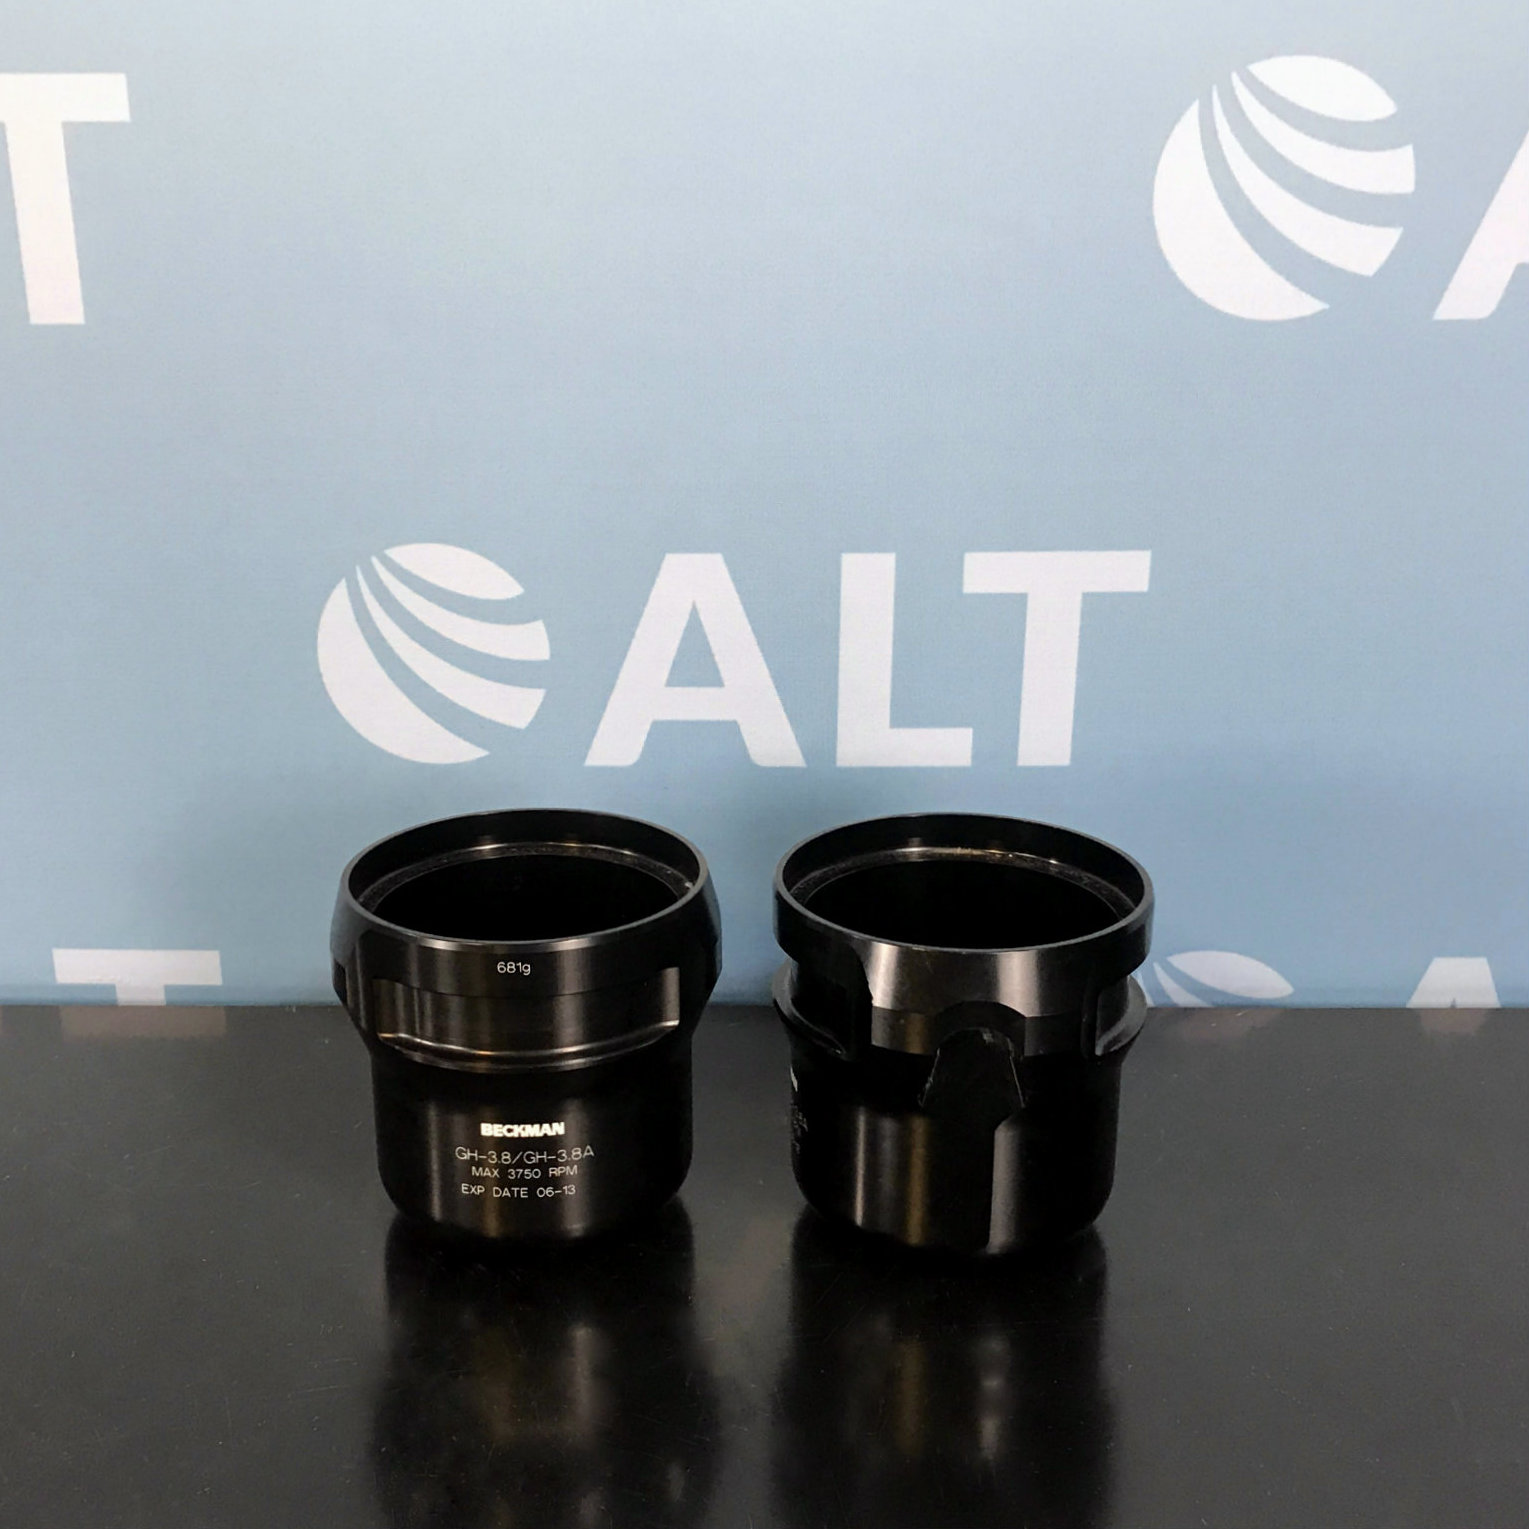 Beckman Coulter Set of 2 GH-3.8/GH-3.8A Swinging Rotor Buckets Image